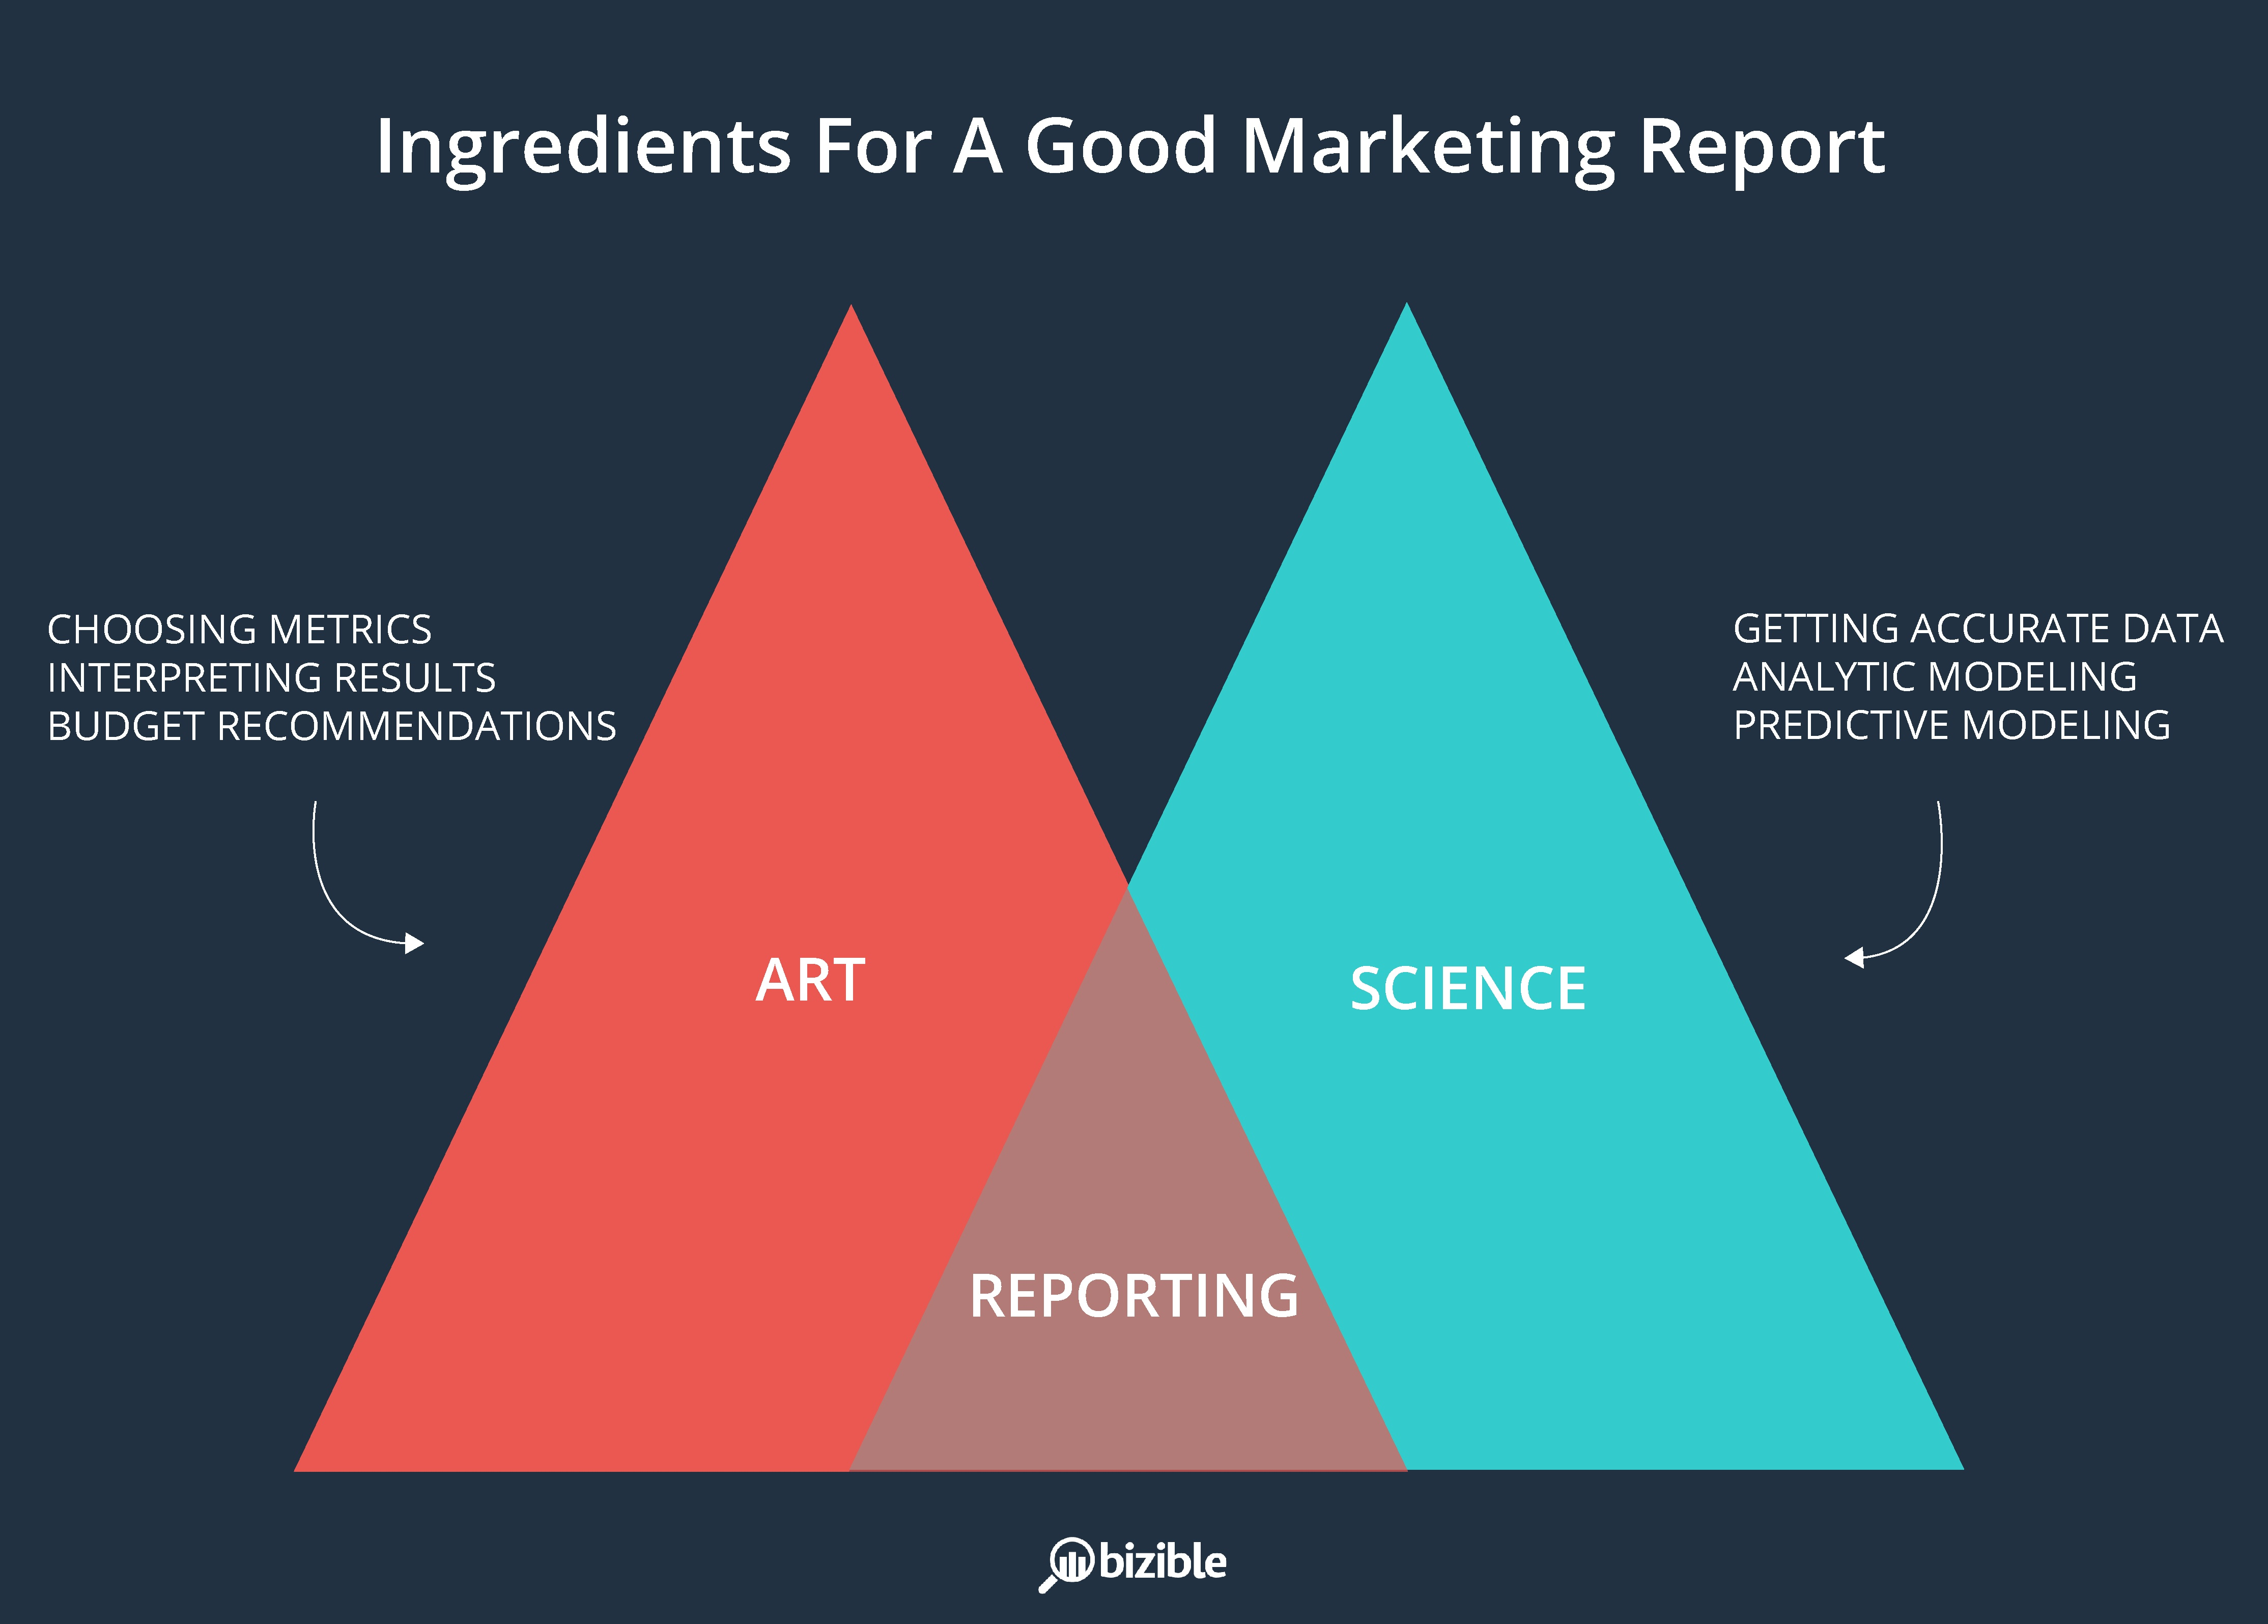 ingredients_for_a_good_b2b_marketing_report-01